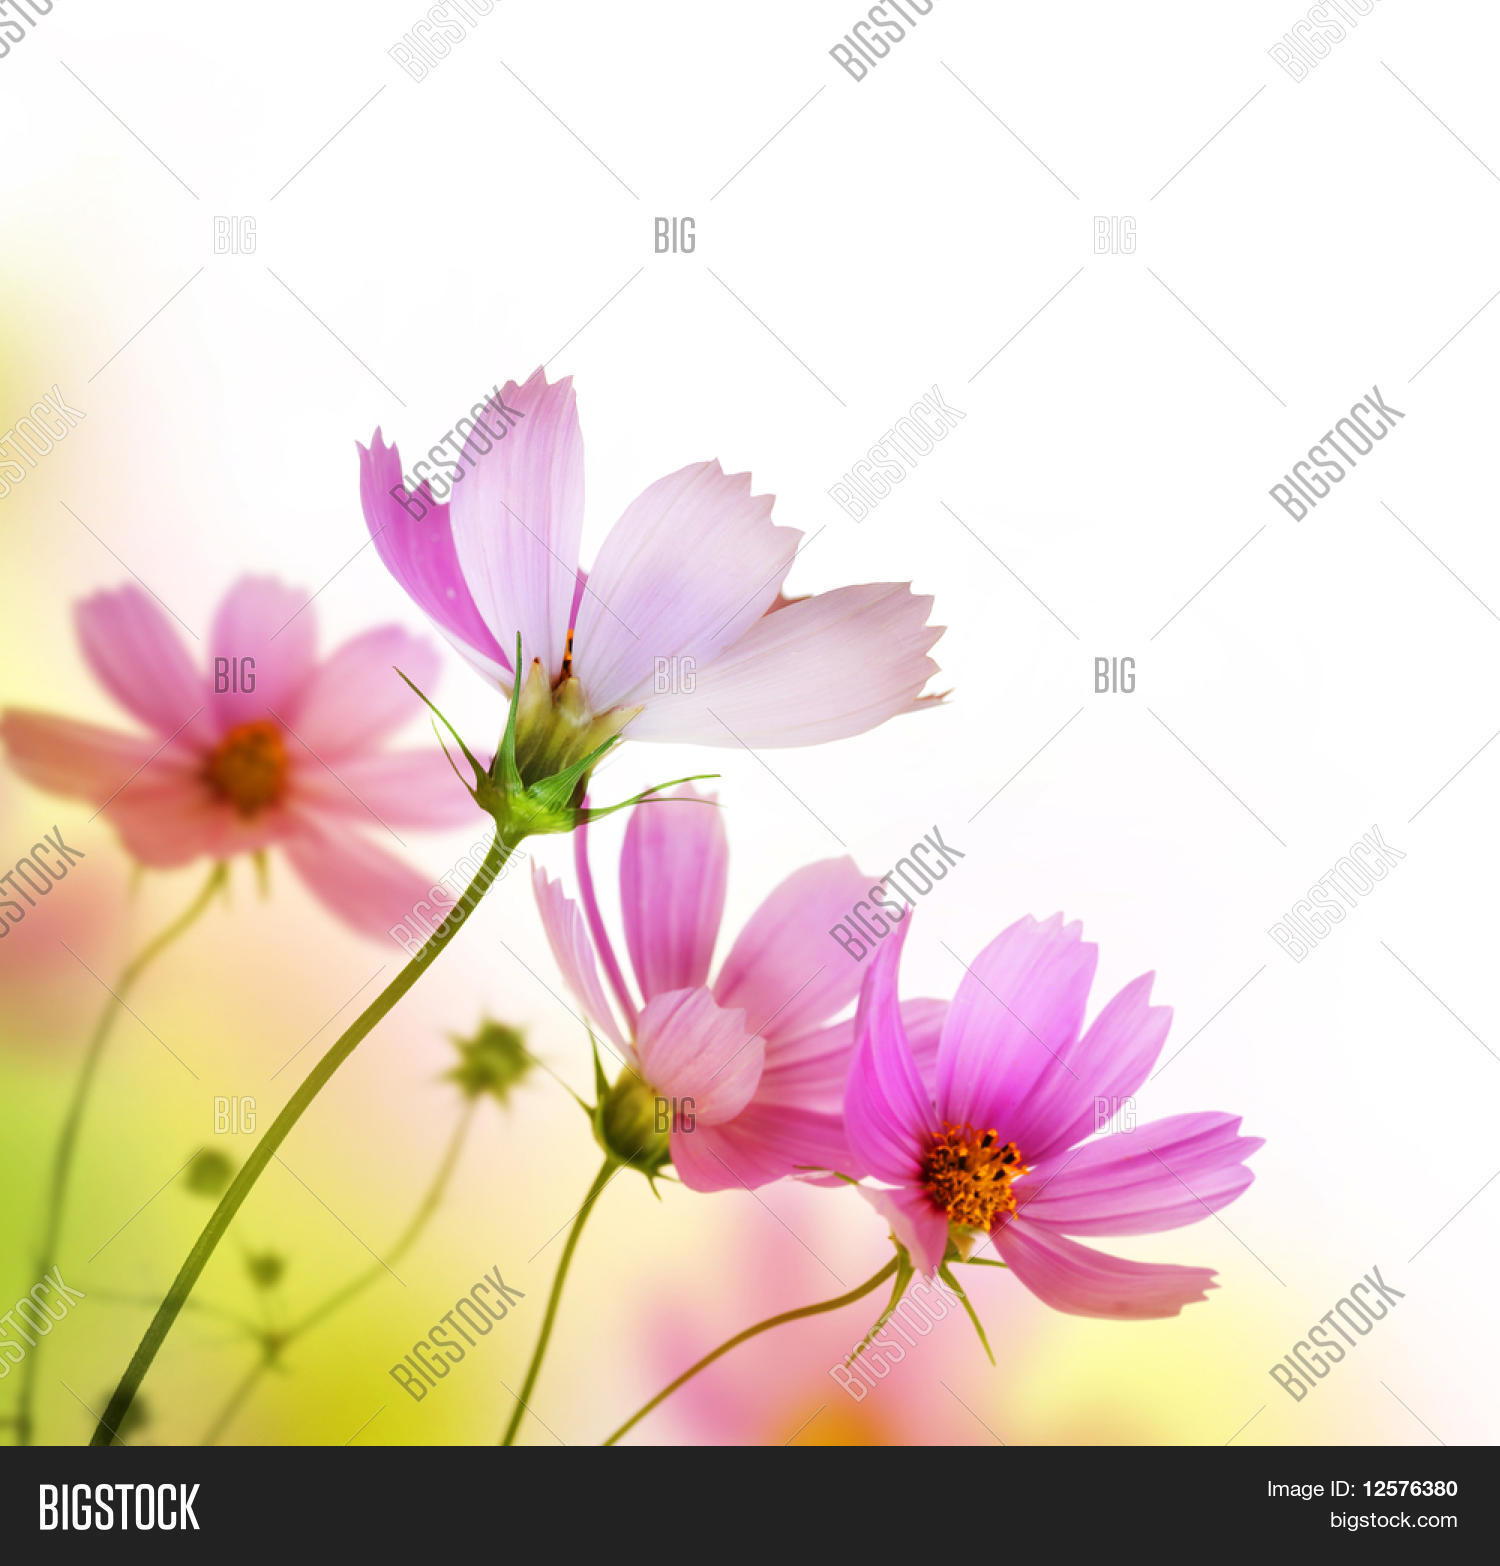 Beautiful floral border flower image photo bigstock - Photo image design ...